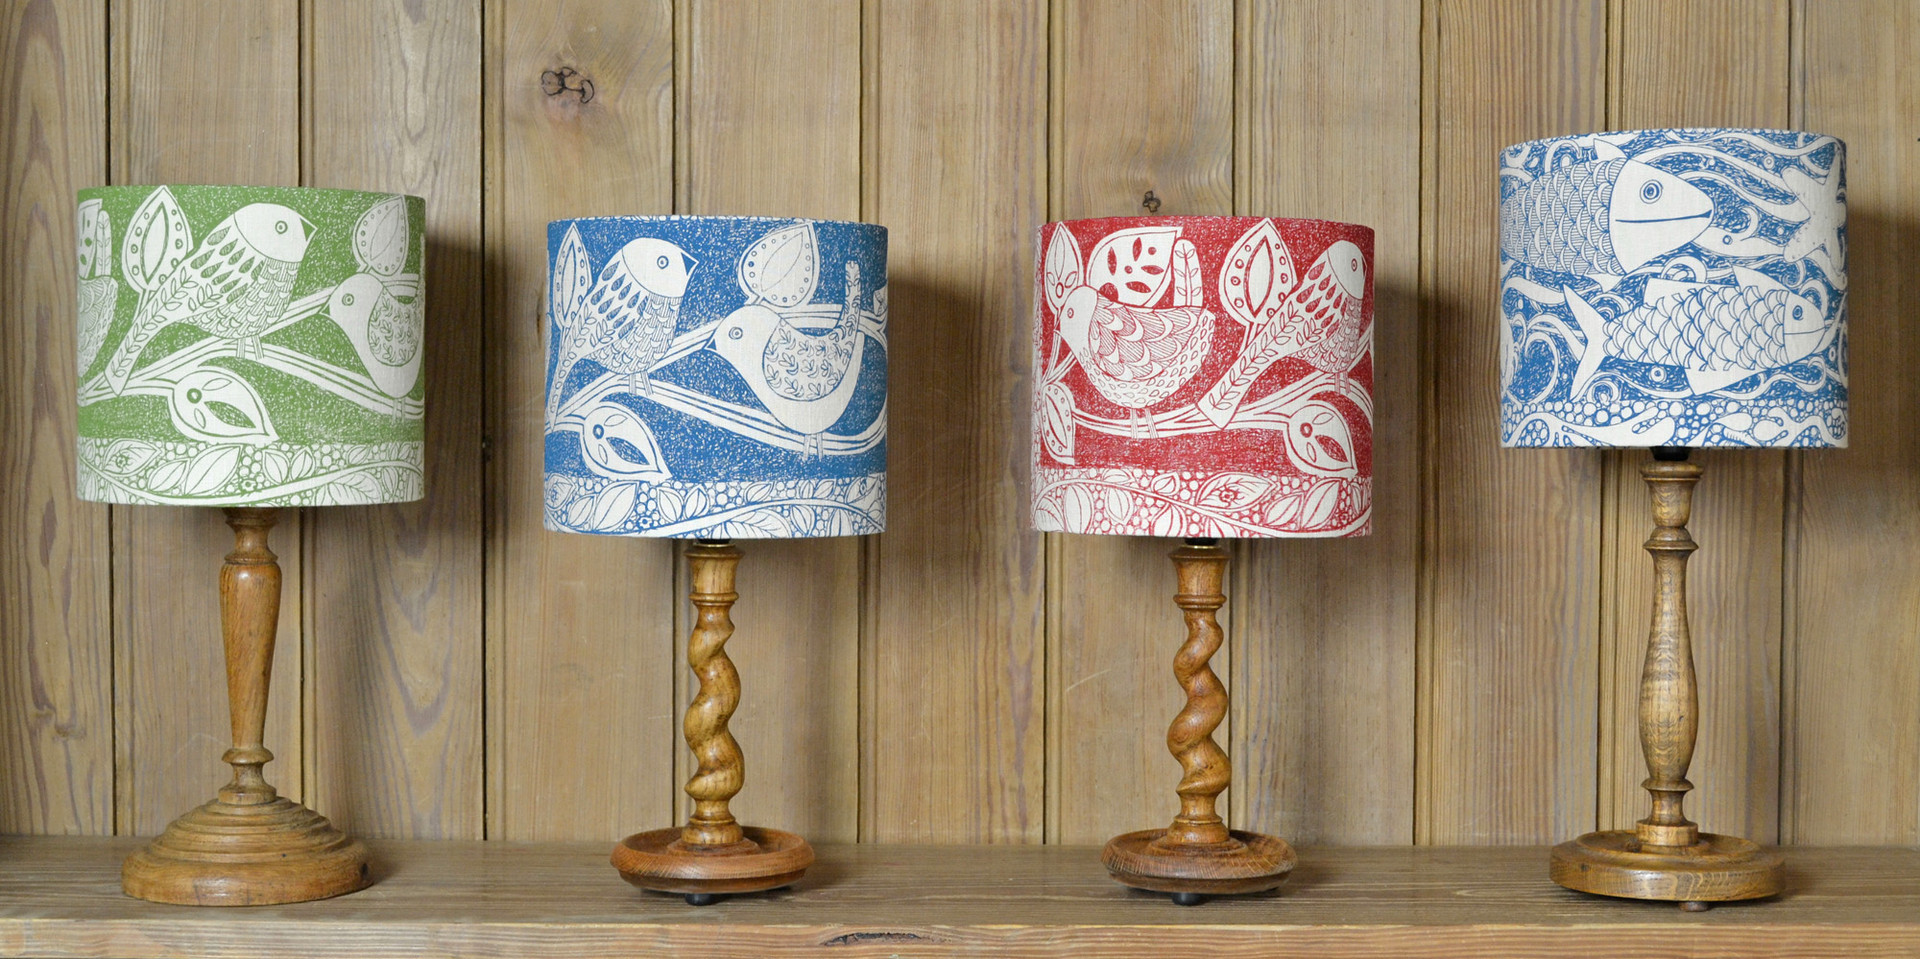 linen lampshades designed by Jill Pargeter